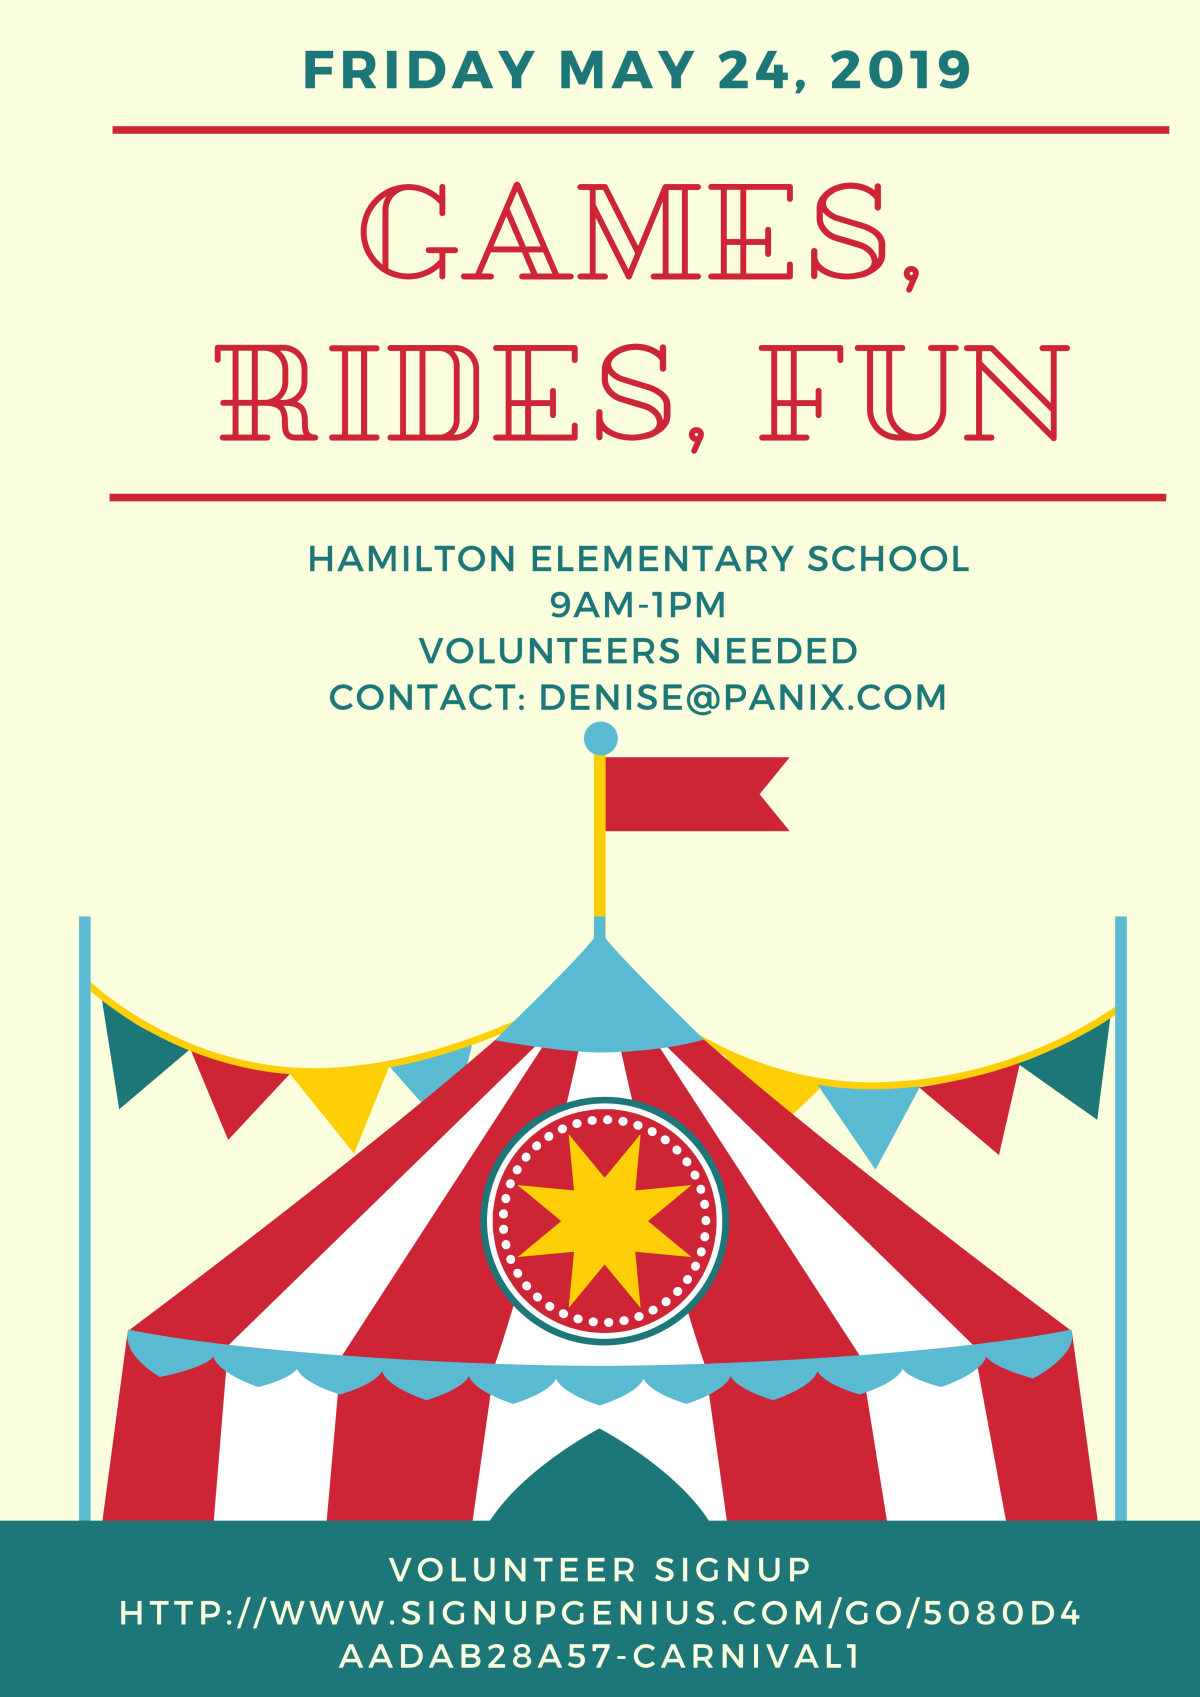 Image of a flyer titled HAMILTON ELEMENTARY SCHOOL CARNIVAL